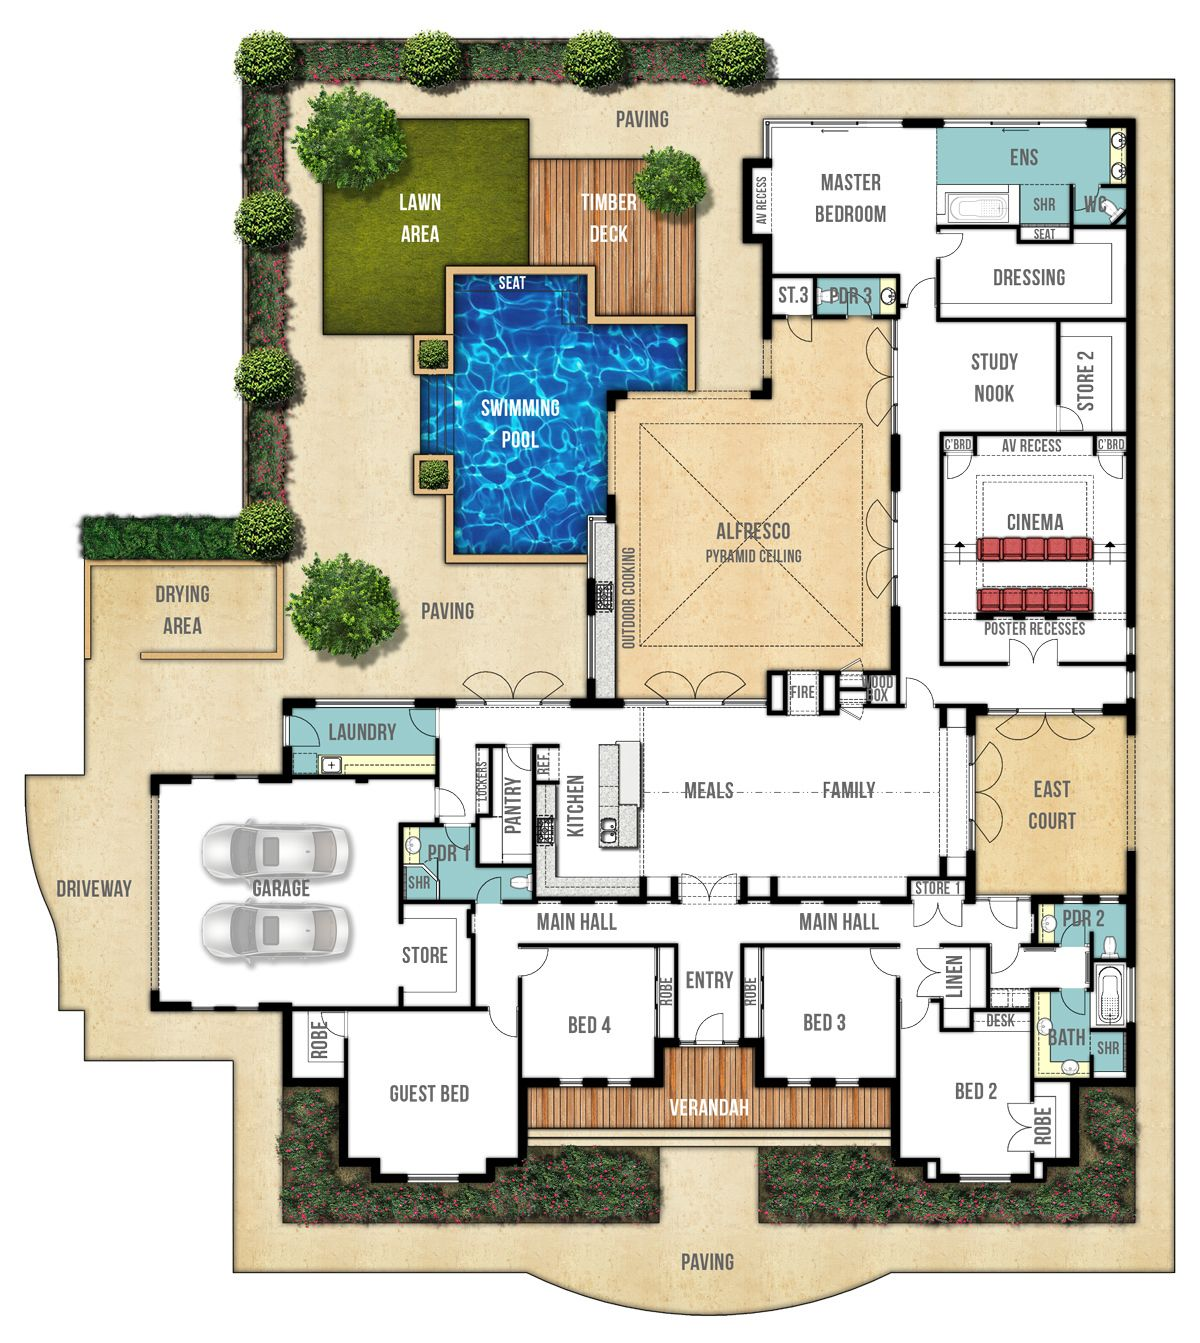 single storey home design plan the farmhouse by boyd design perth - House Design Plan